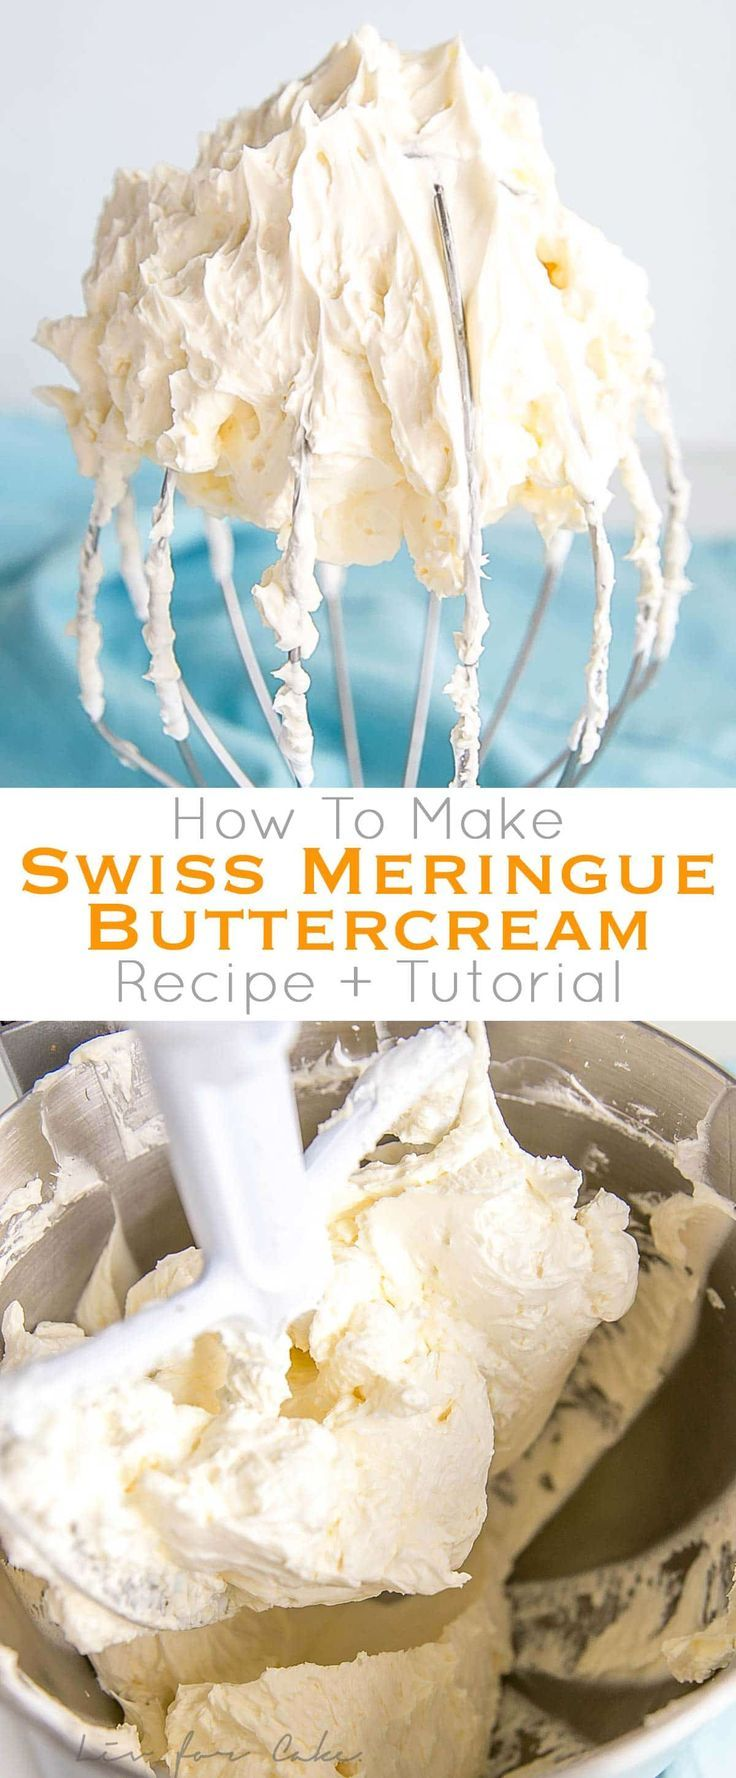 This tutorial on how to make Swiss Meringue buttercream is the only resource you'll need to make the smoothest, silkiest frosting! It includes step-by-step photos, a troubleshooting guide, and frequently asked questions. | livforcake.com via @livforcake #frostings